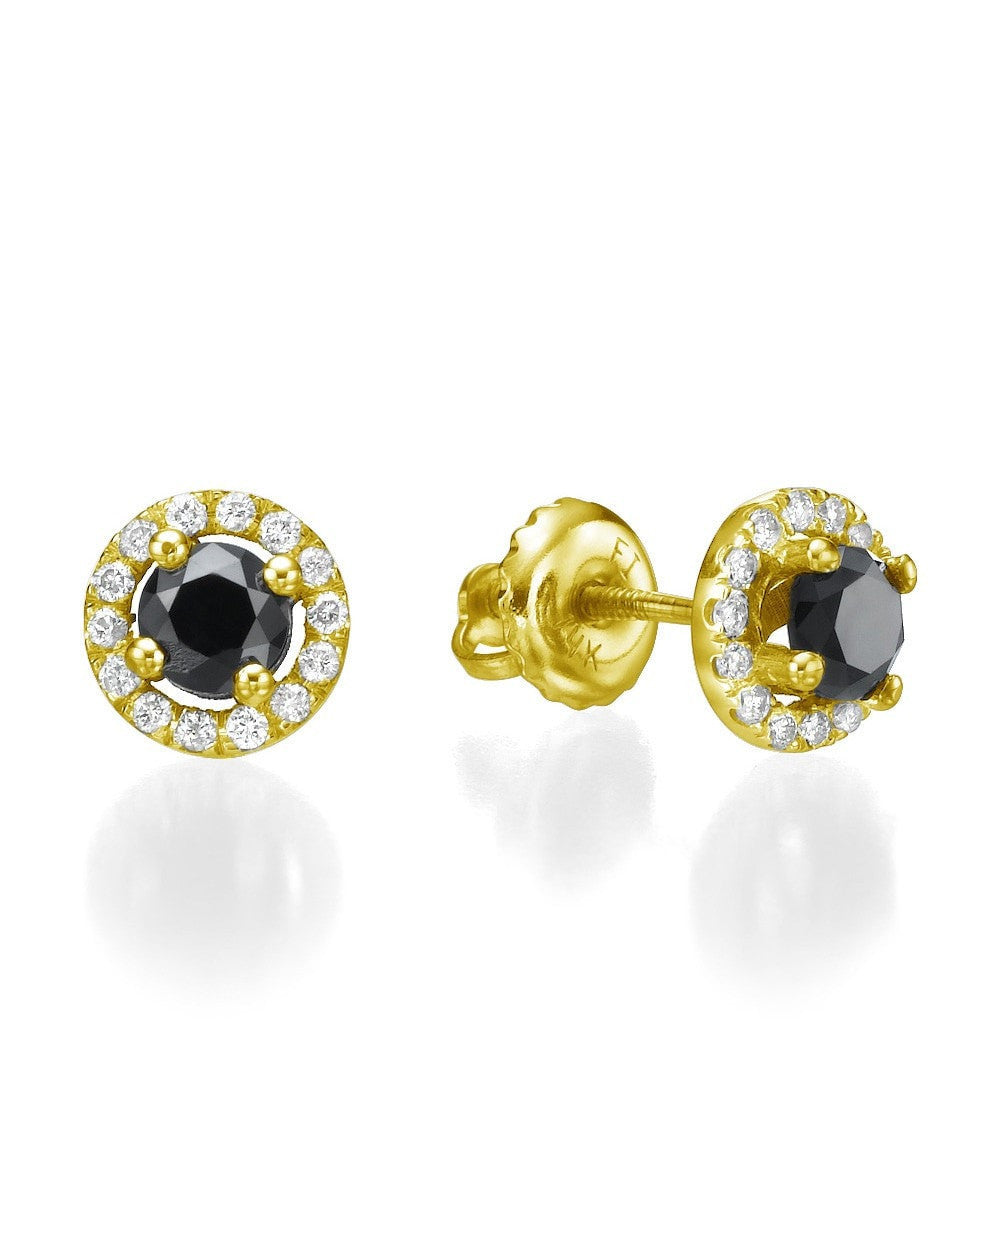 Earrings Black Diamond Earrings, Halo Style in Yellow Gold - 0.70 carat